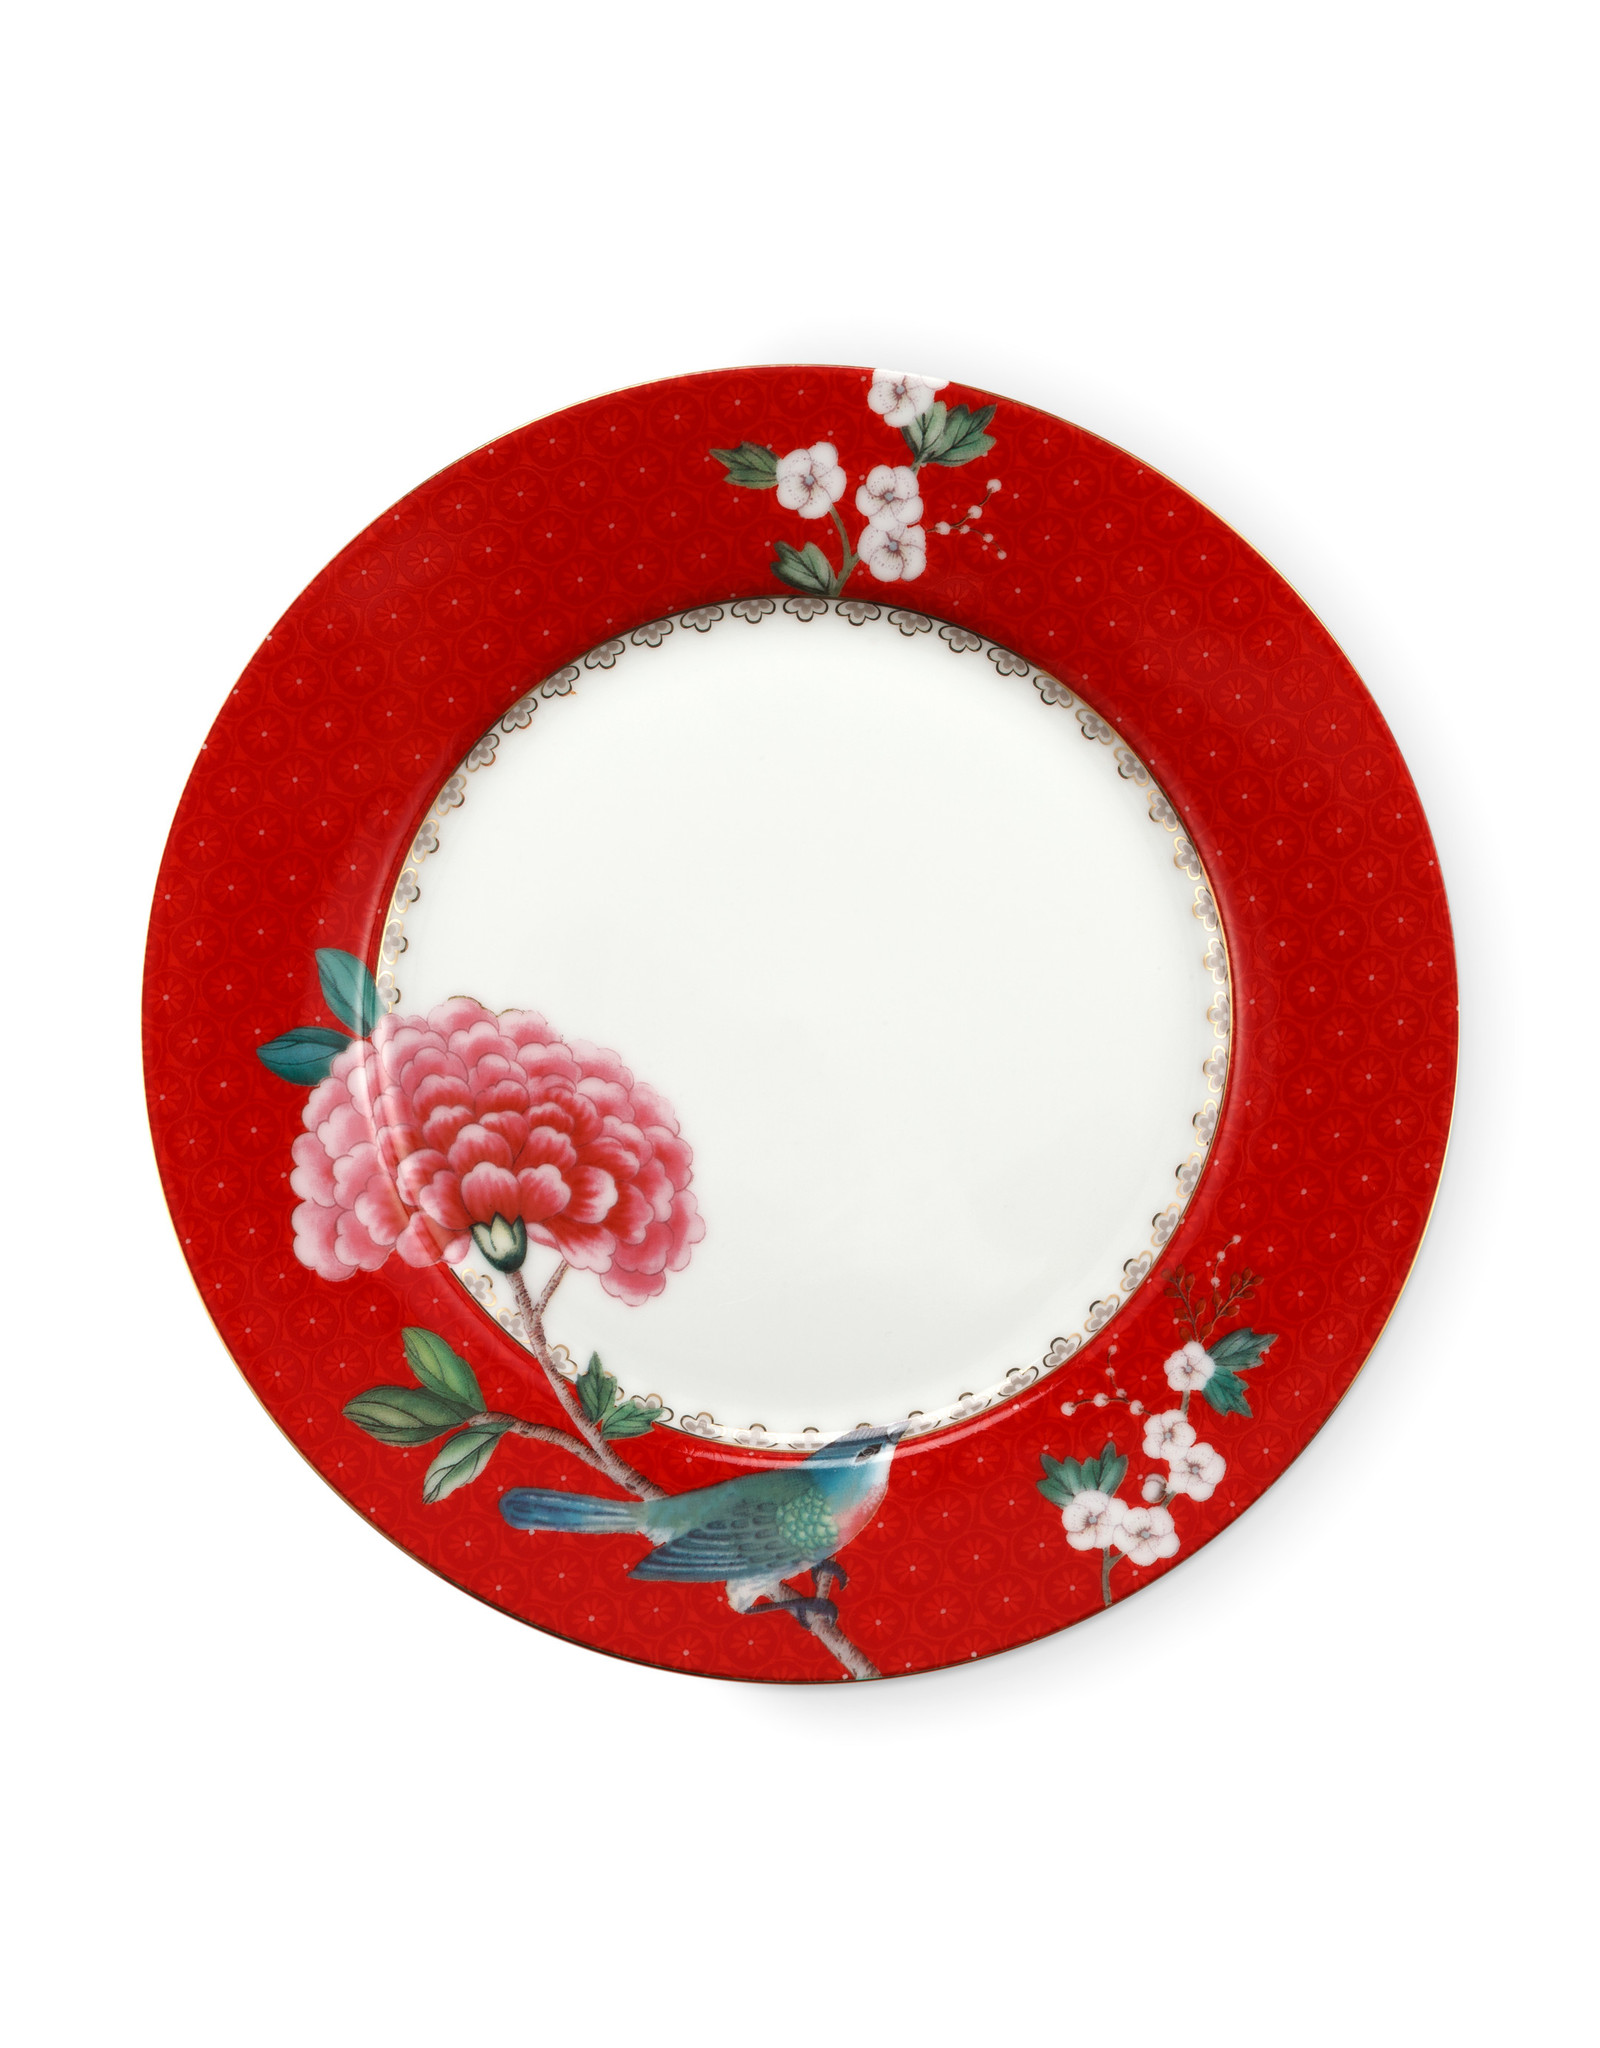 pip studio Plate Blushing Birds Red 21cm